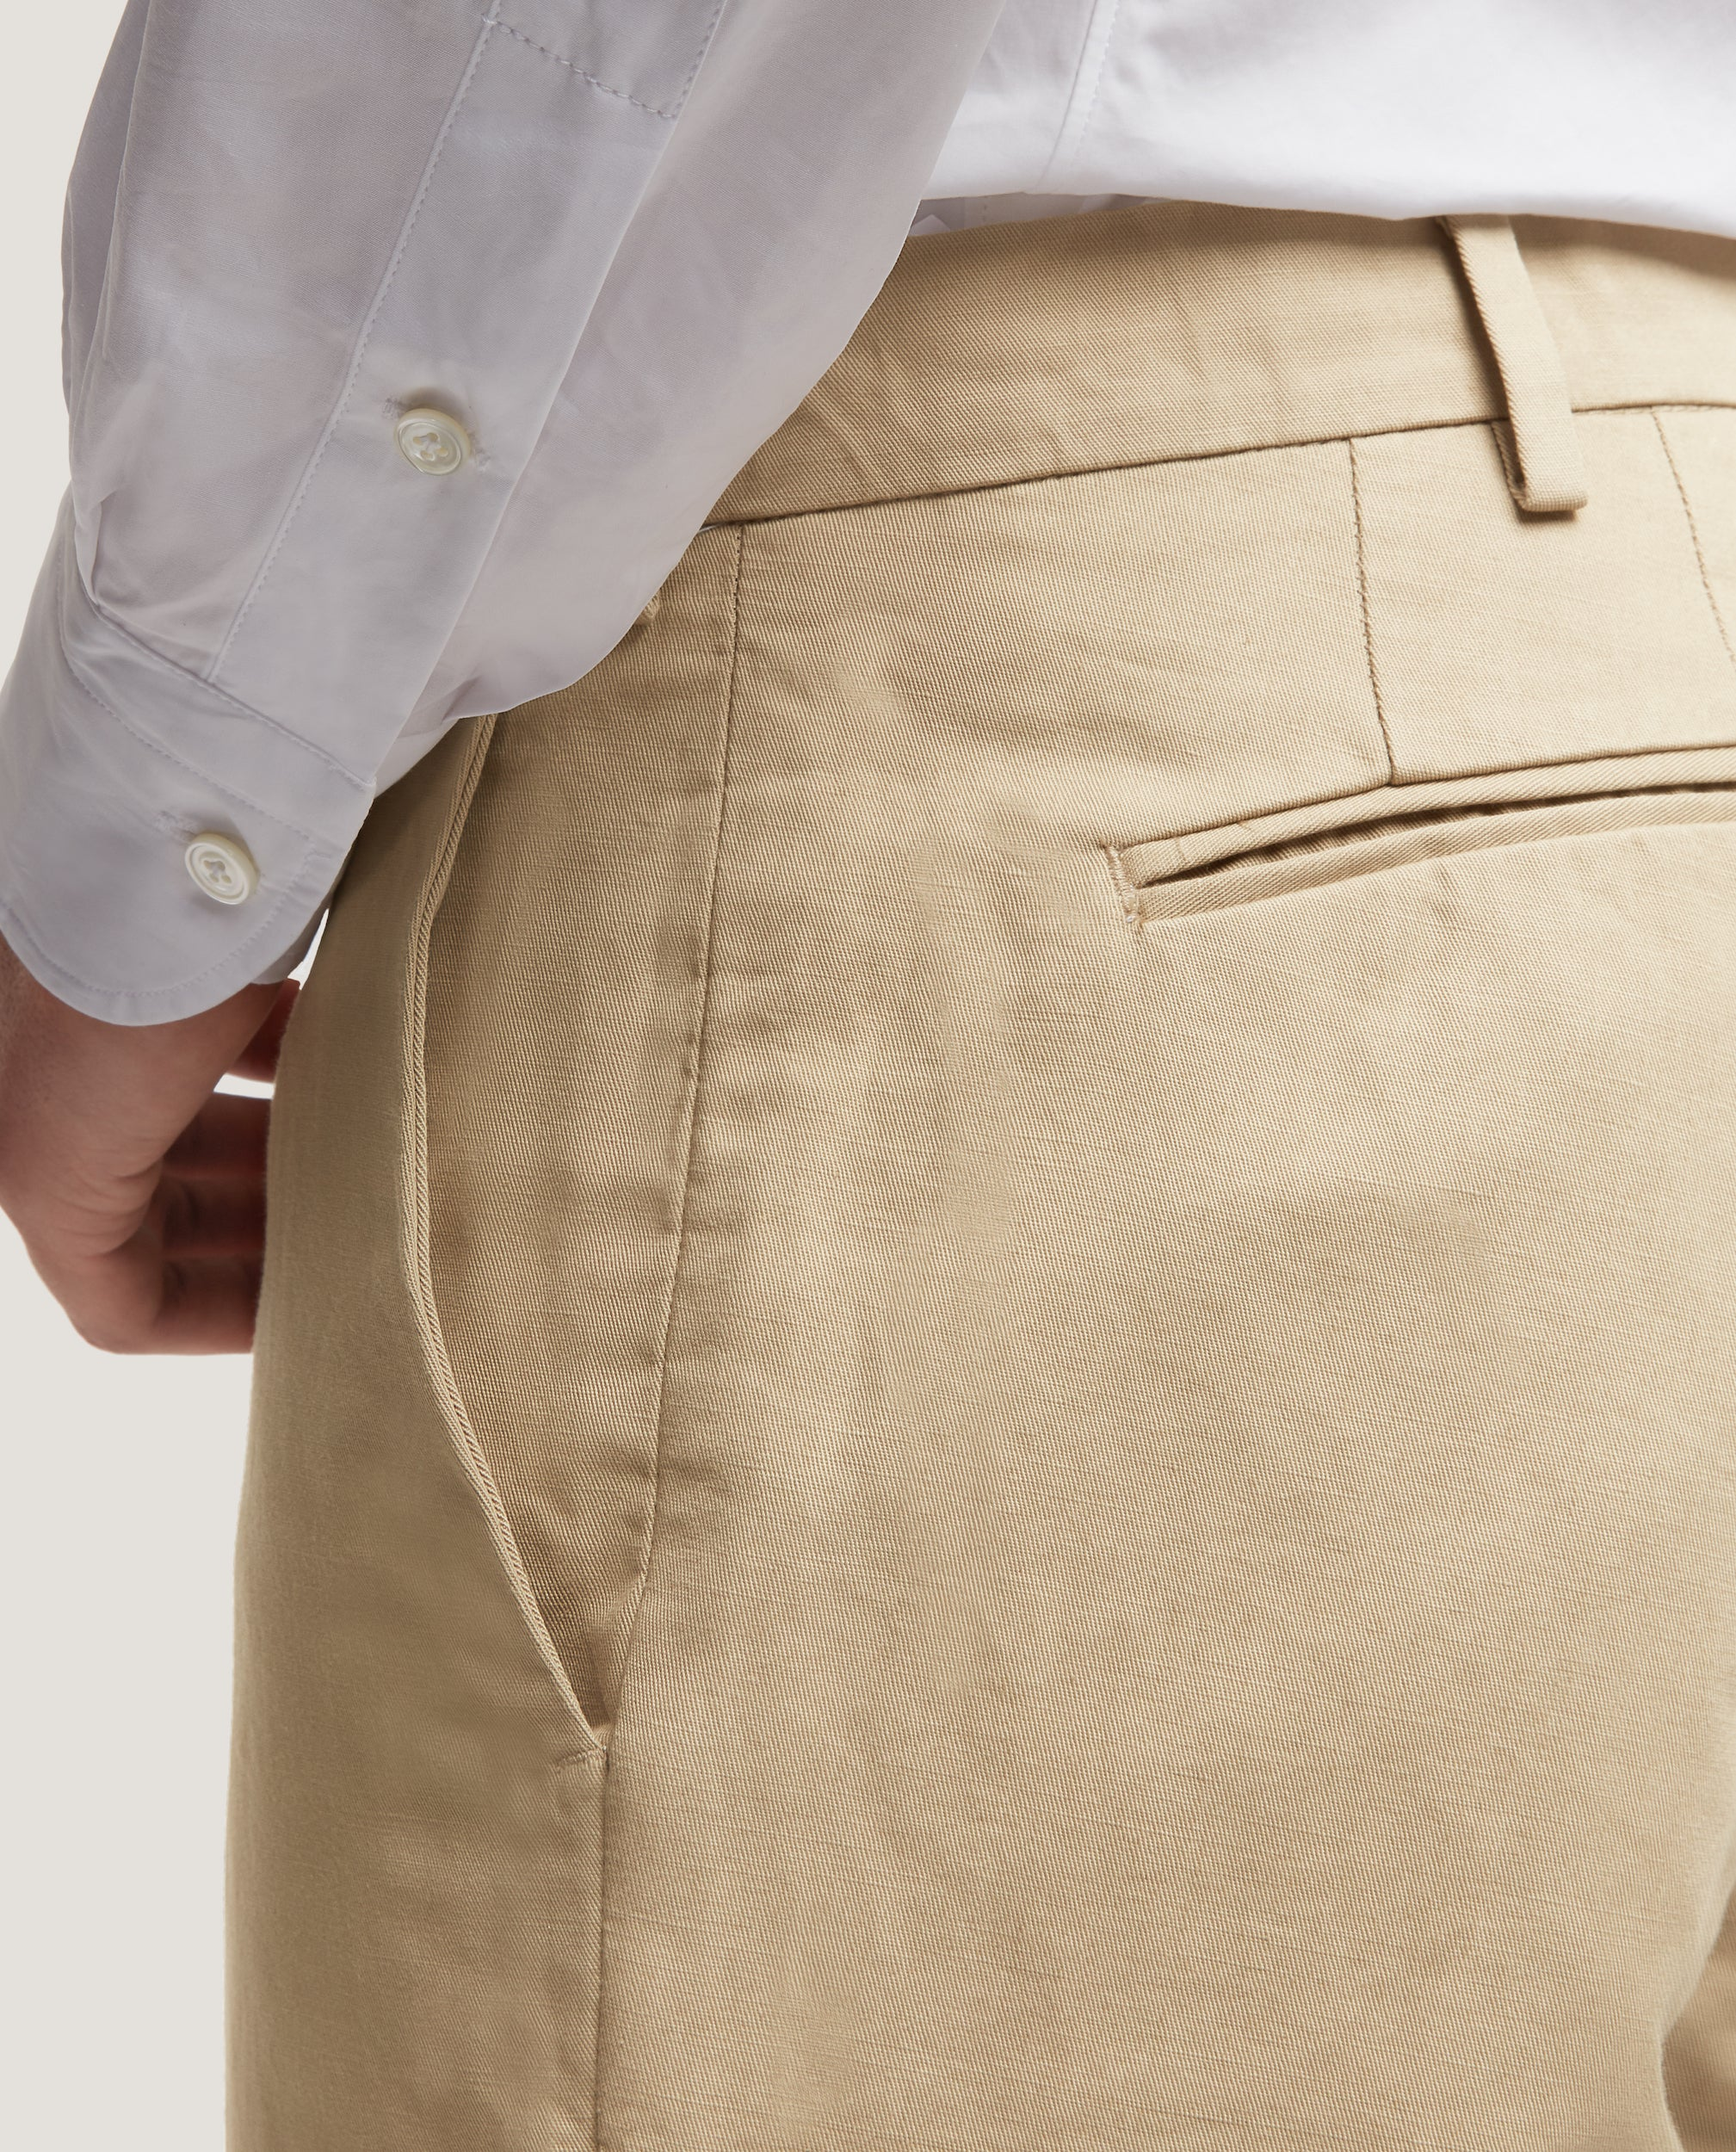 GEHRY Chino trousers | Slim fit | Cotton linen | Beige